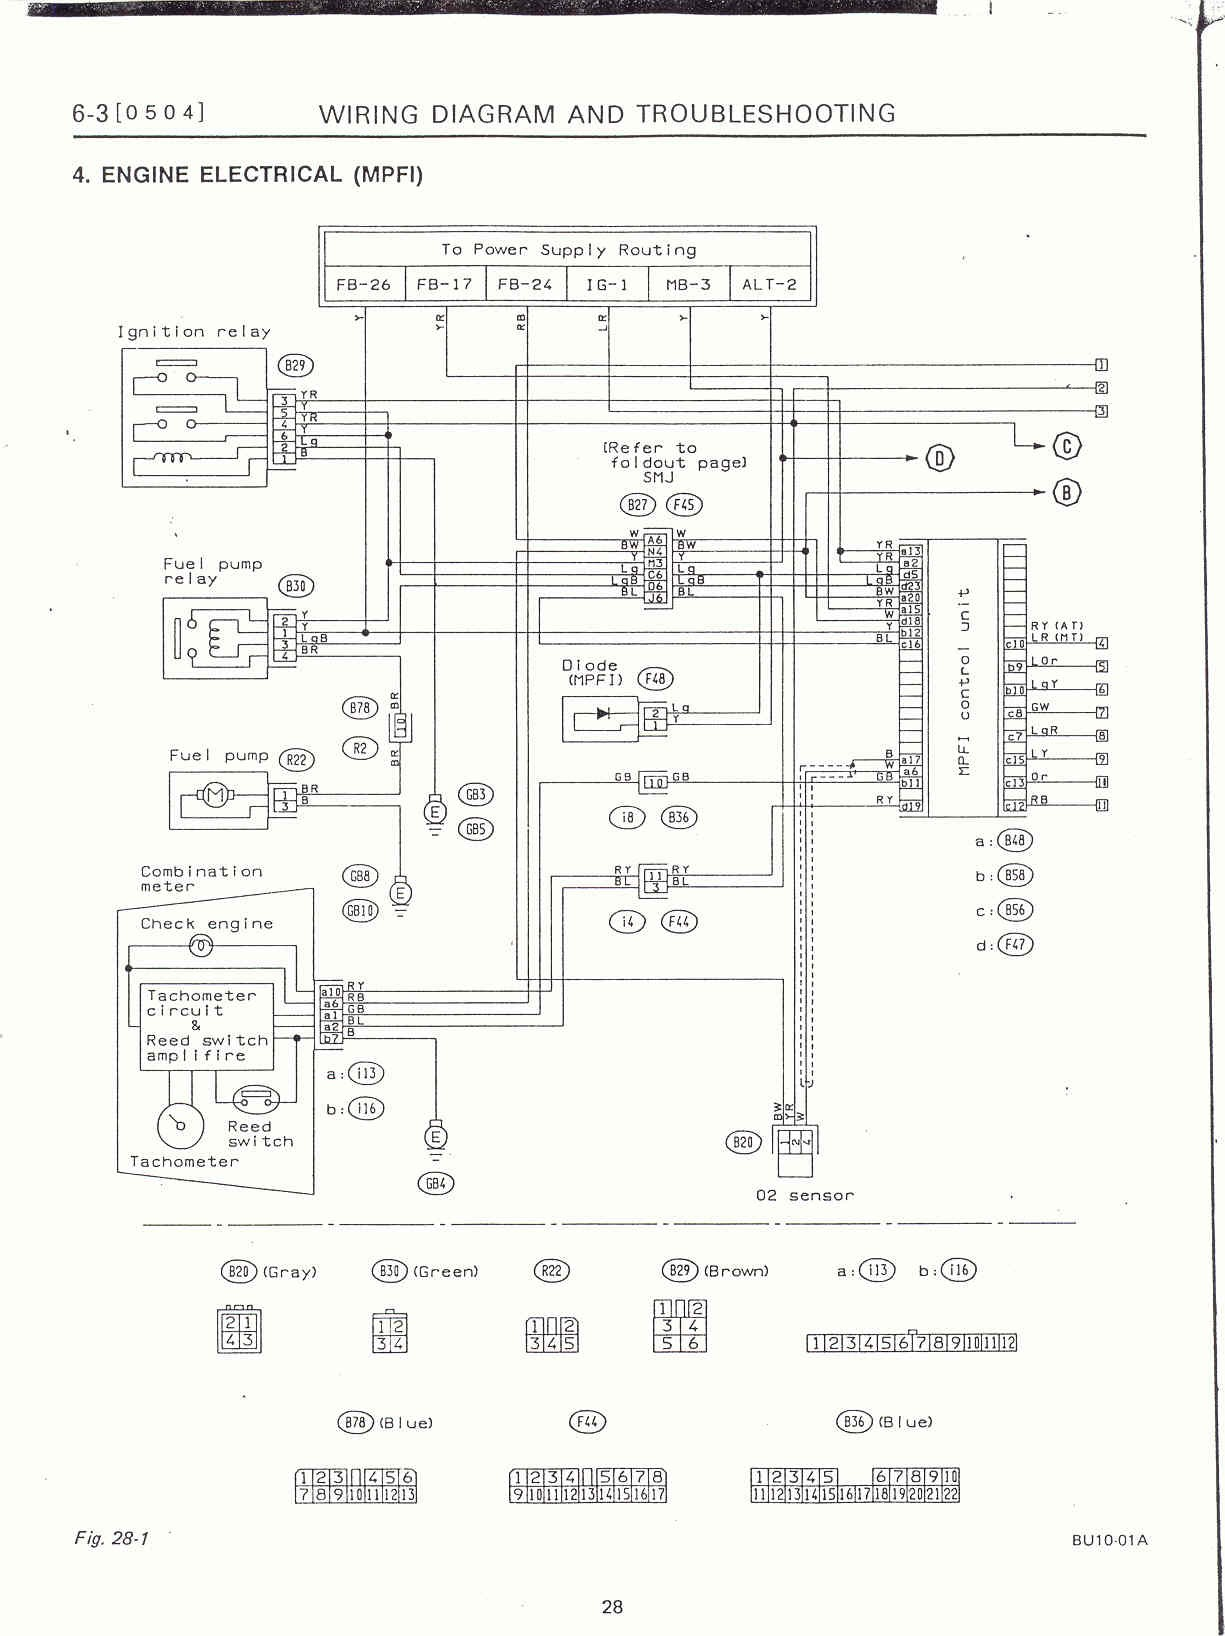 Subaru Impreza Fuse Box Wiring Diagram Database